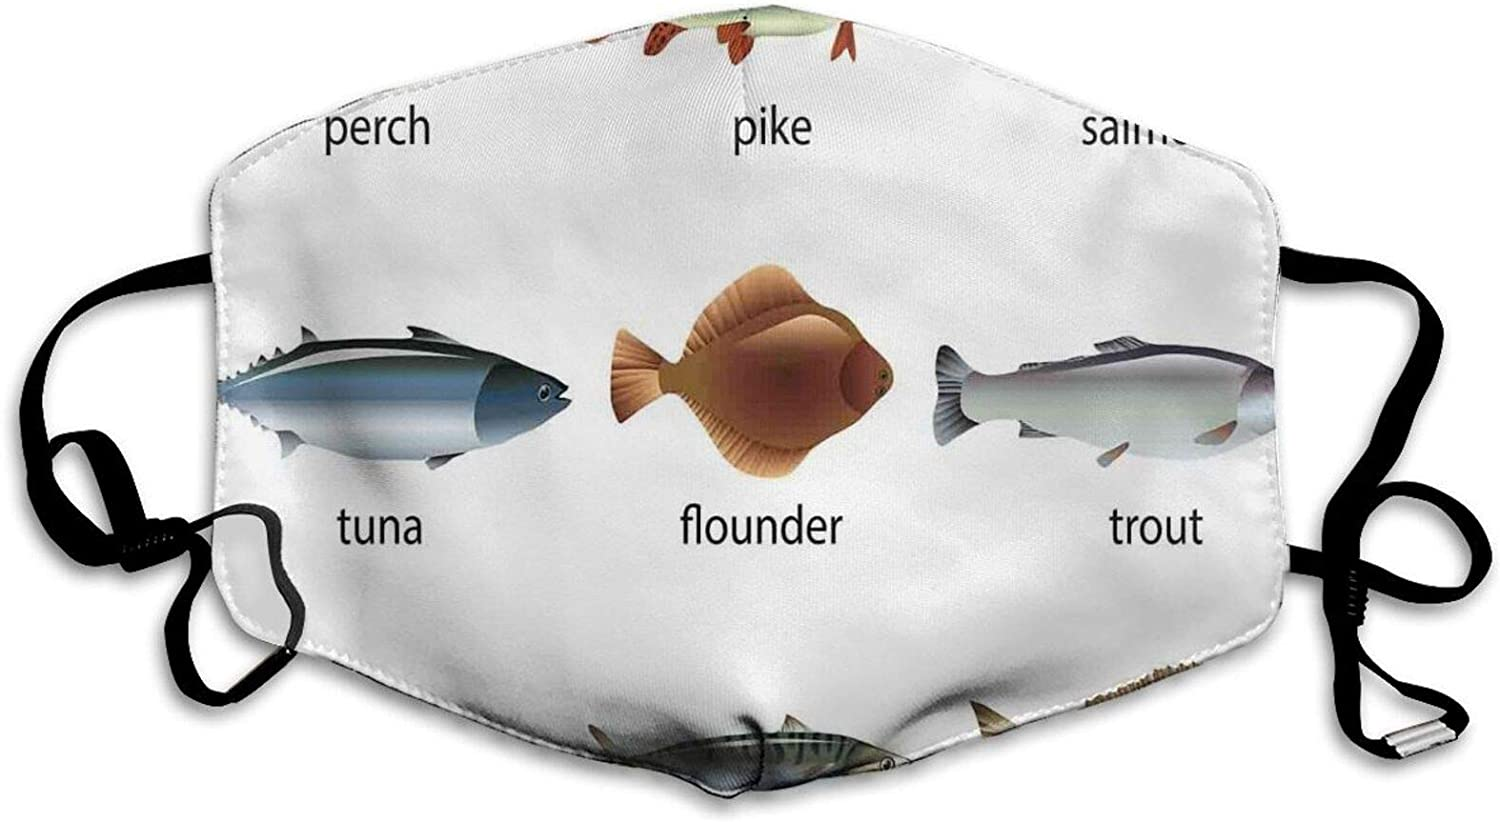 GULTMEE Group of Fish with Perch Tuna Pike Flounder Mackerel Trout Aquatic Life Artwork Print